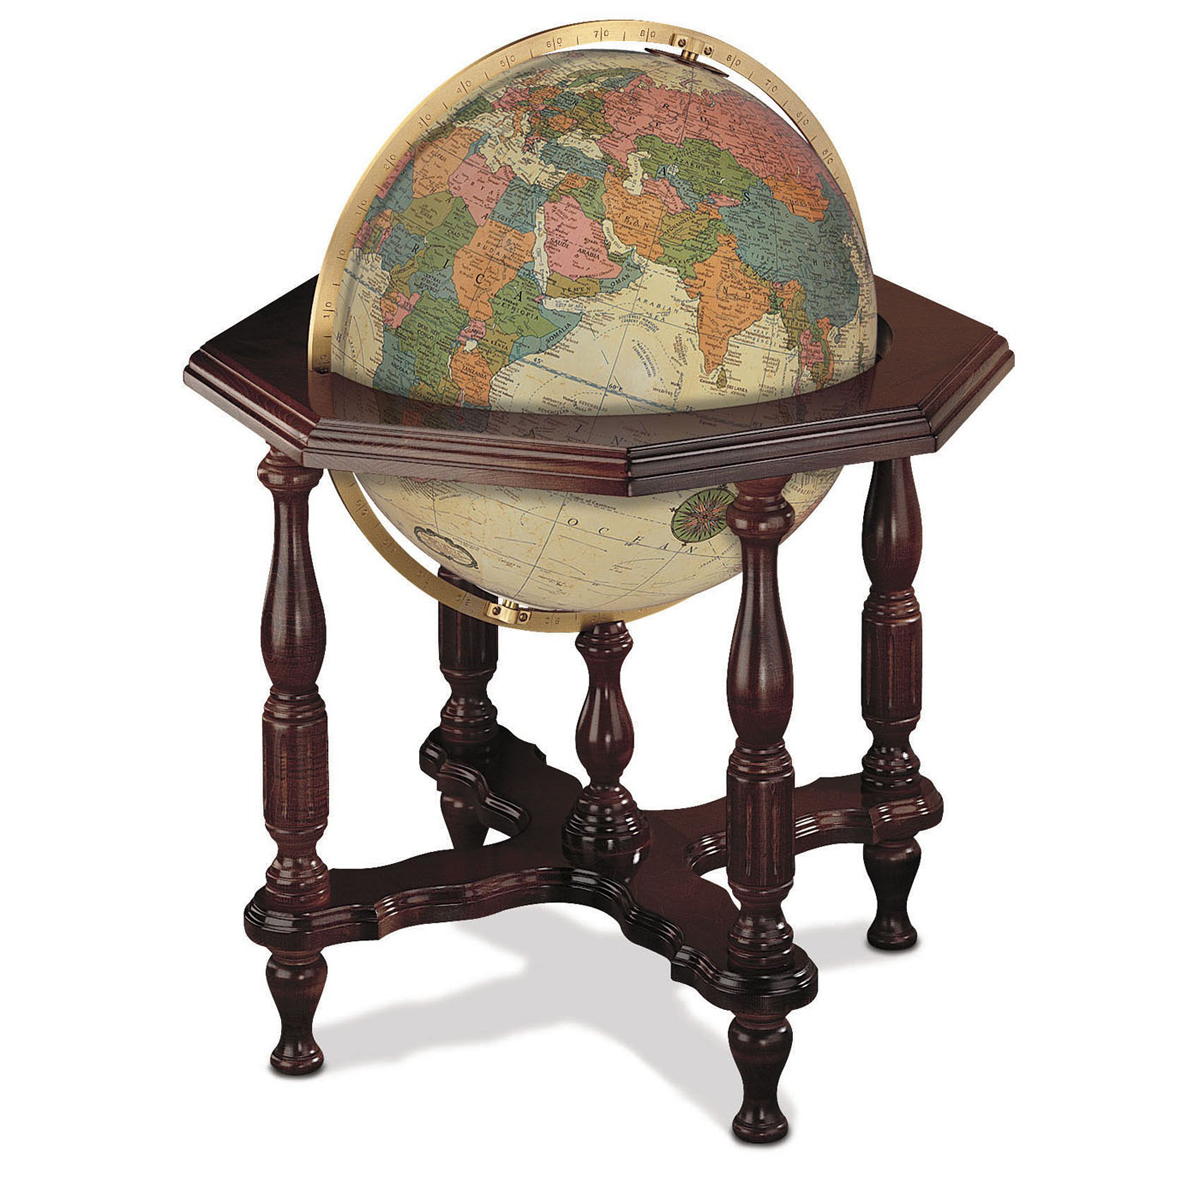 20 Statesman Illuminated Floor Globe By Replogle